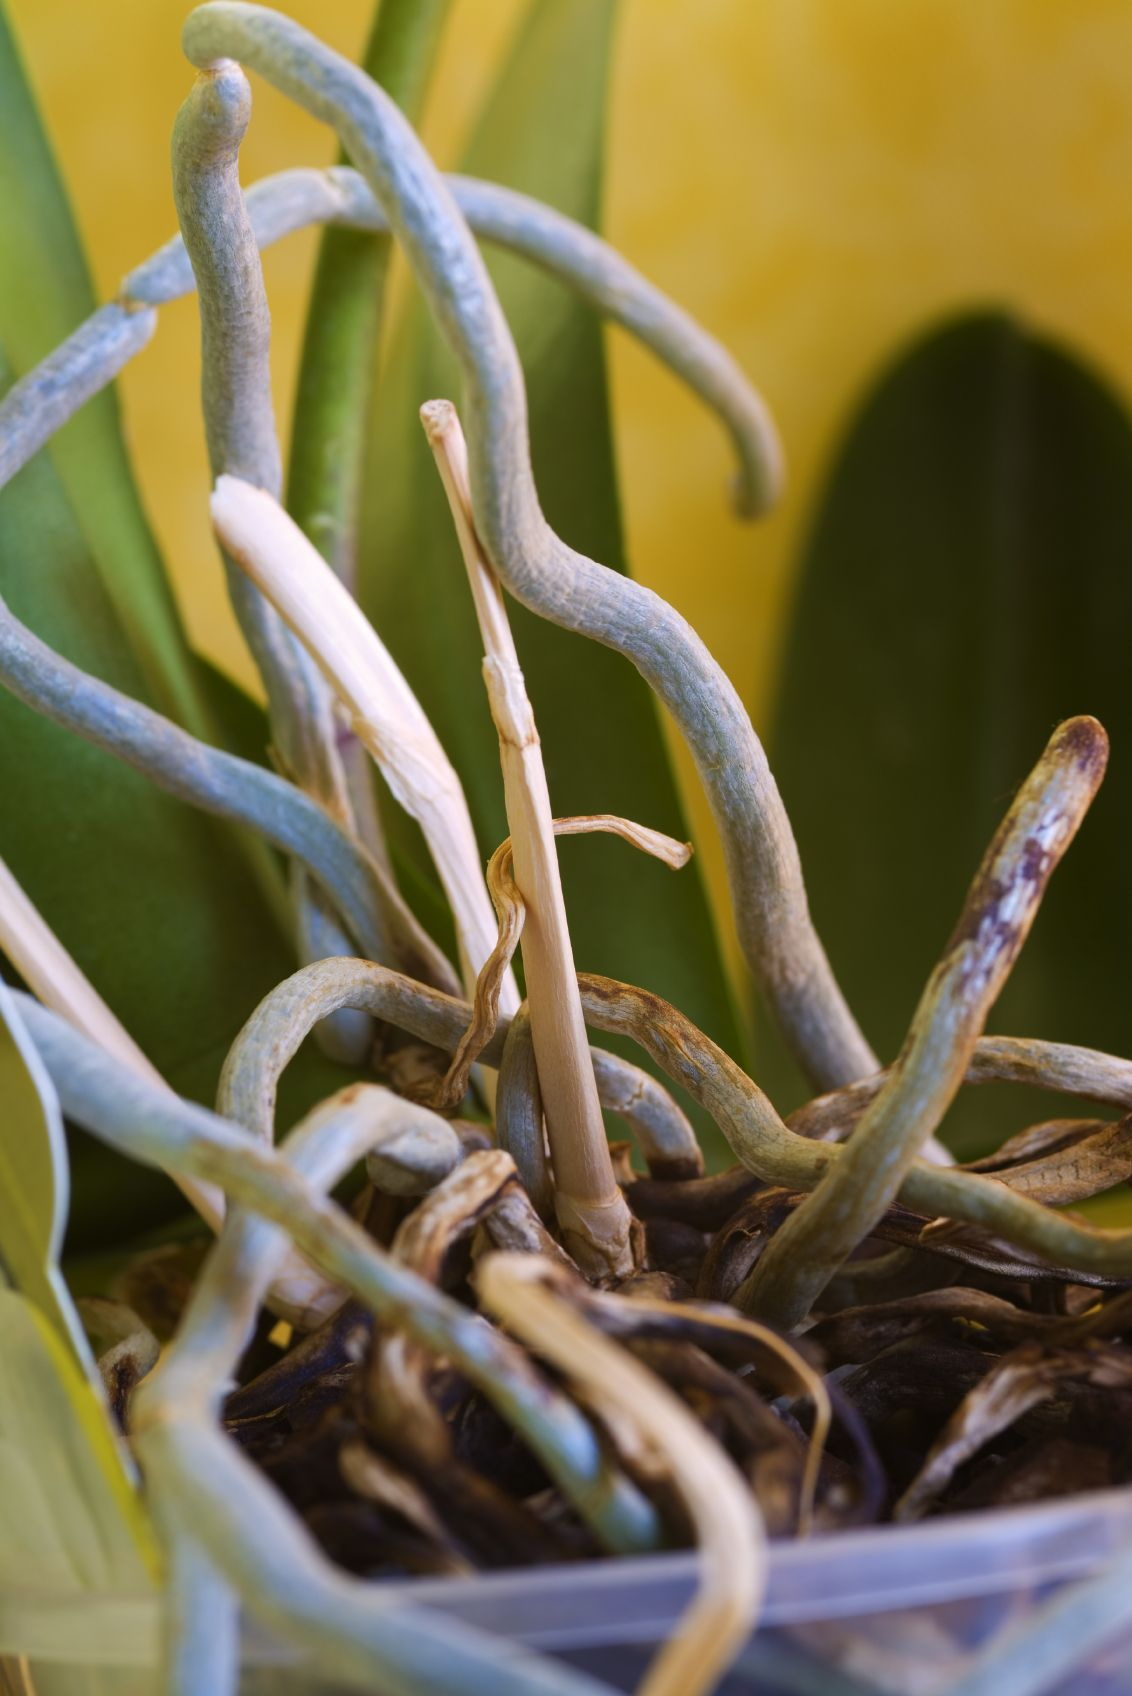 What are orchid tendrils is this an orchid root or stem growing on